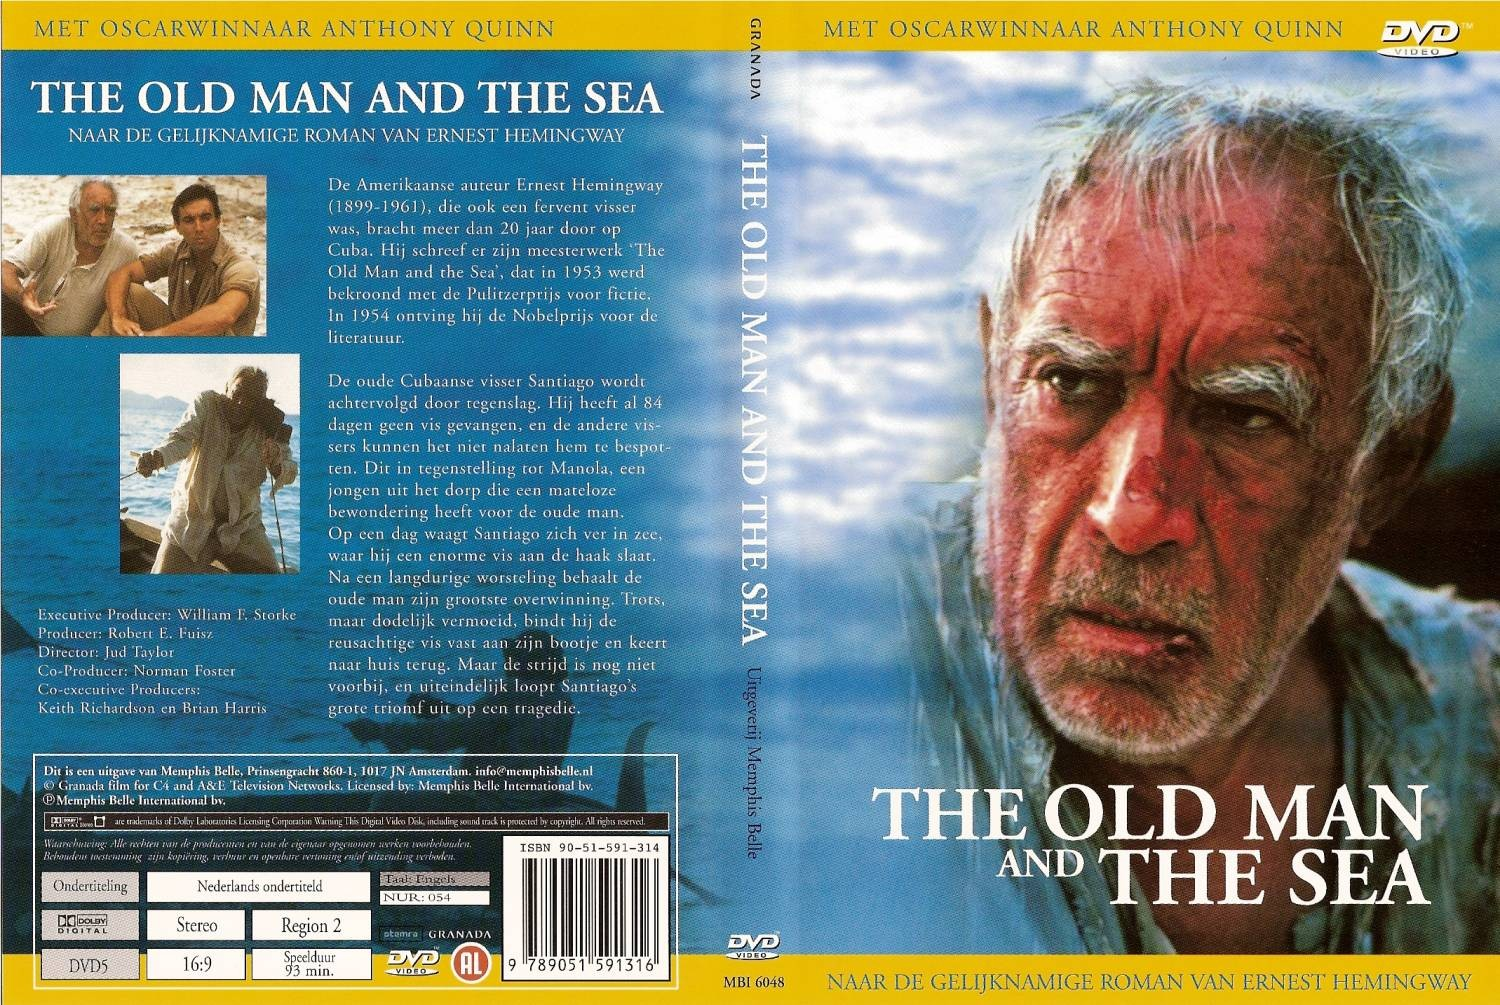 The movie the old man